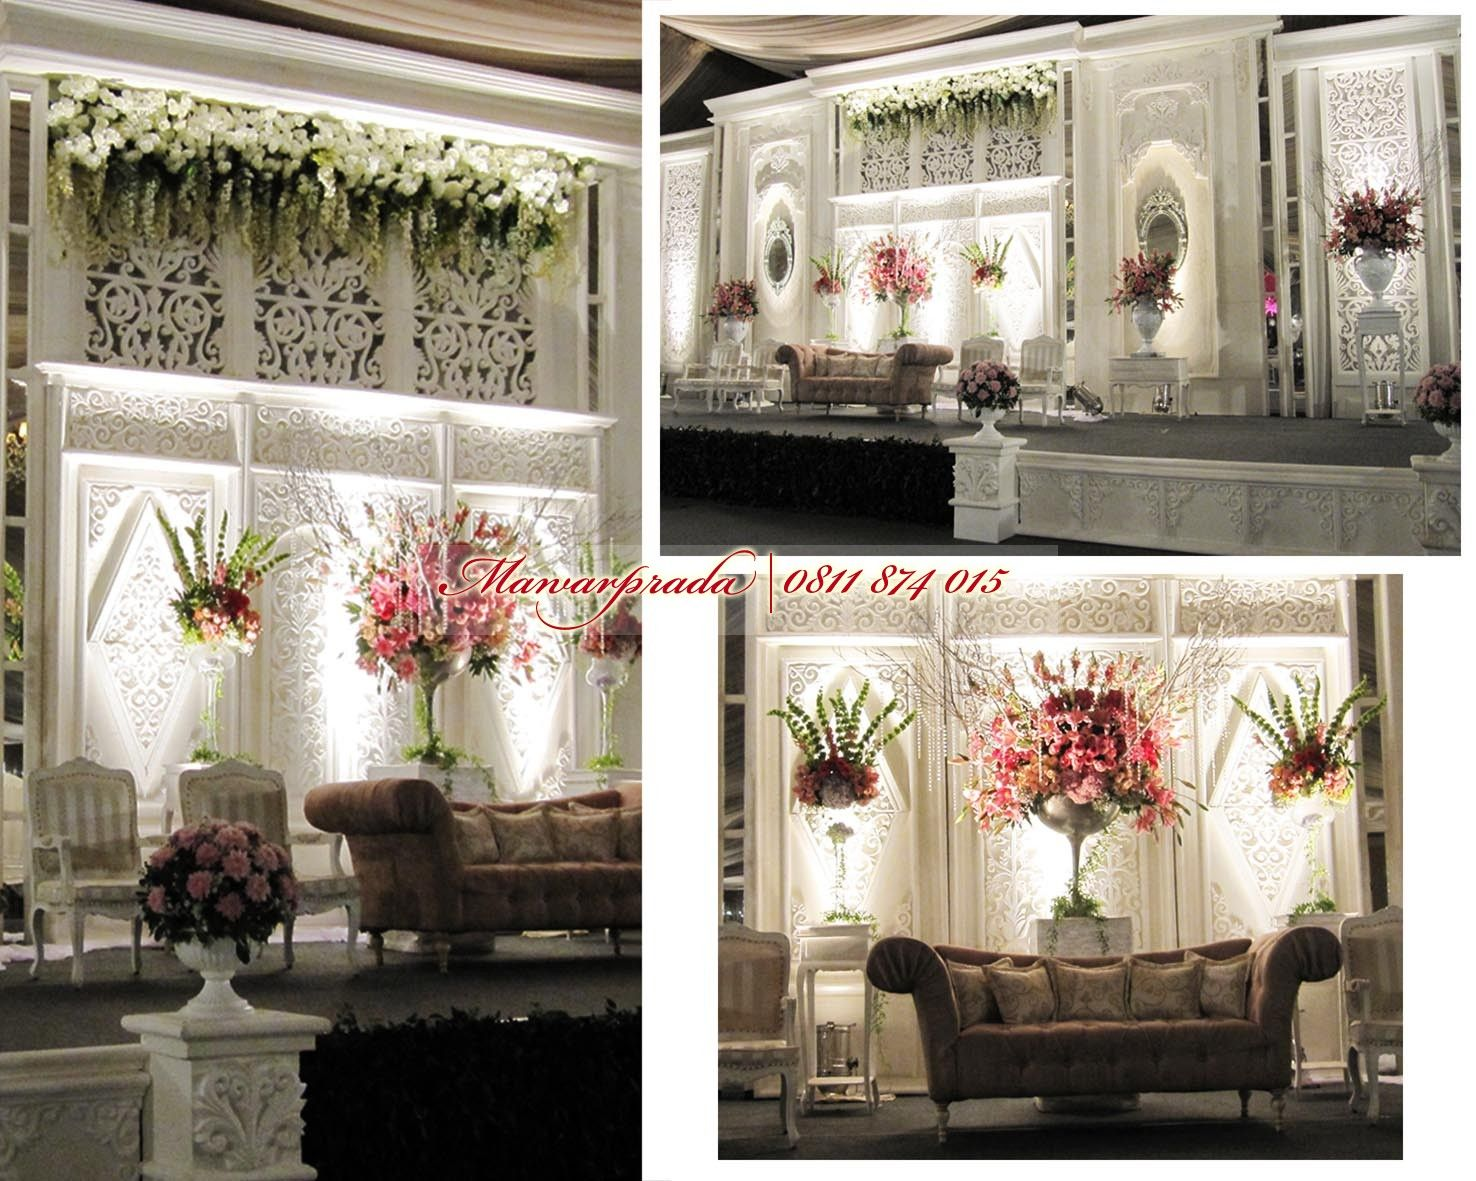 Wedding dec0r ala indonesia all about wedding pinterest wedding dec0r ala indonesia junglespirit Image collections